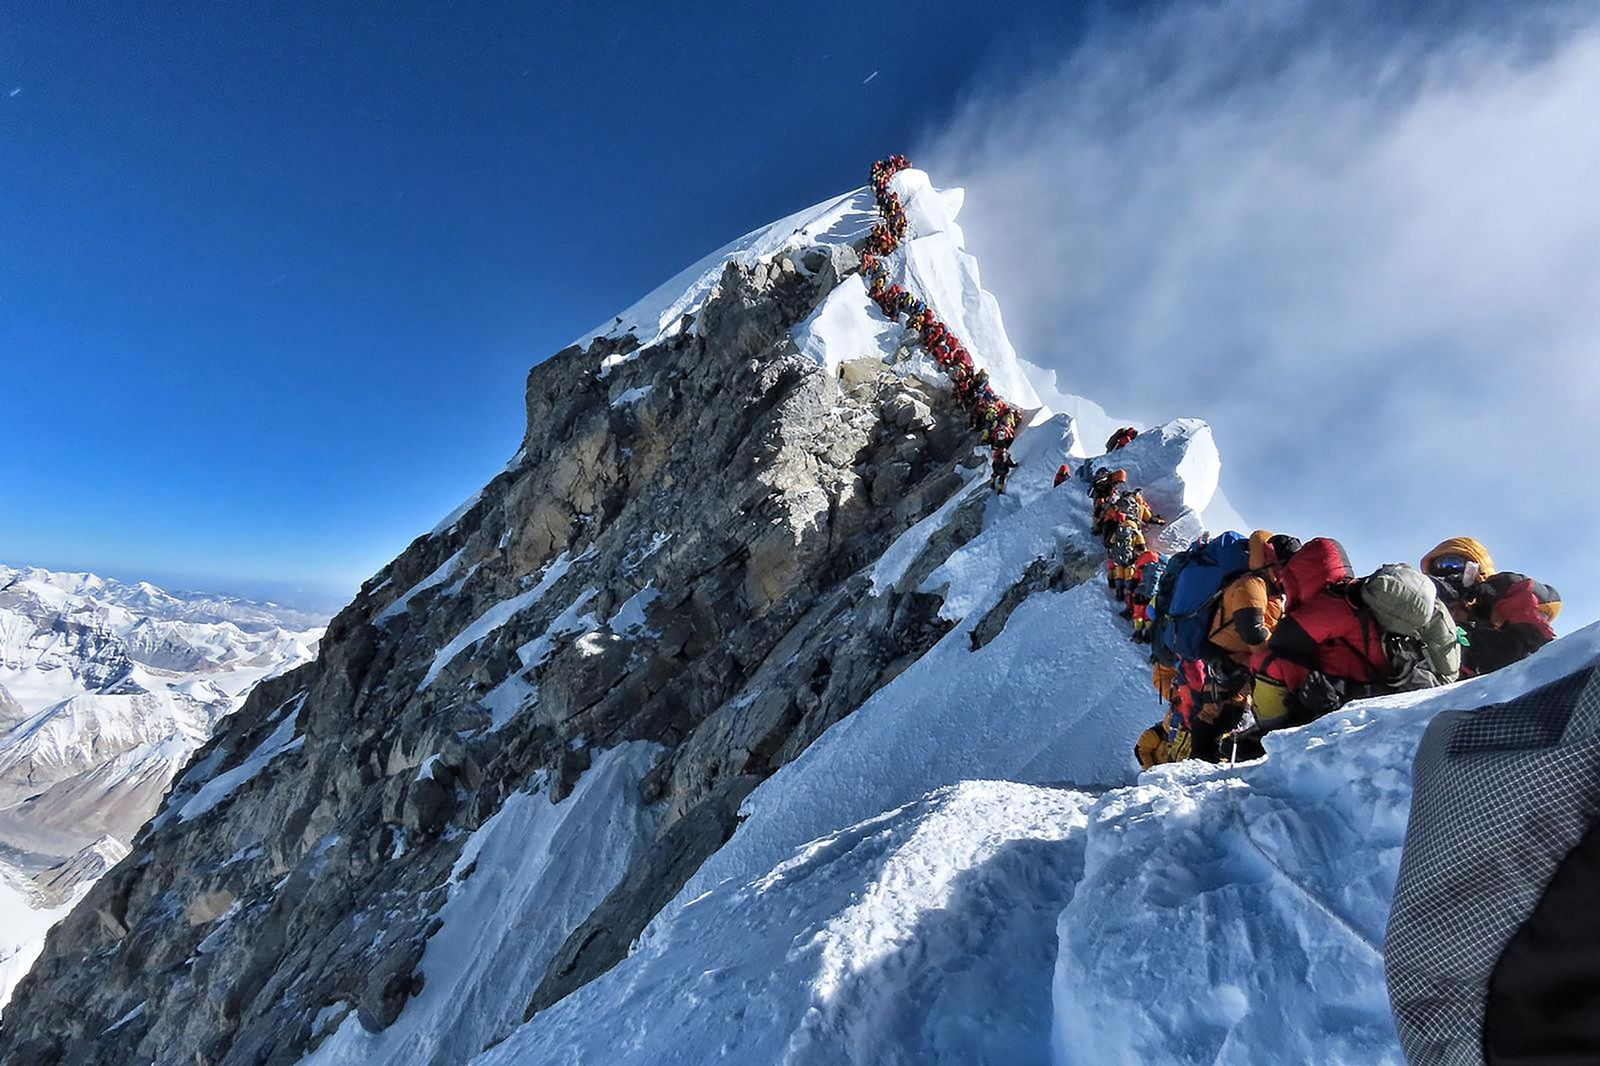 FILES-INDIA-AUSTRIA-NEPAL-MOUNTAINEERING